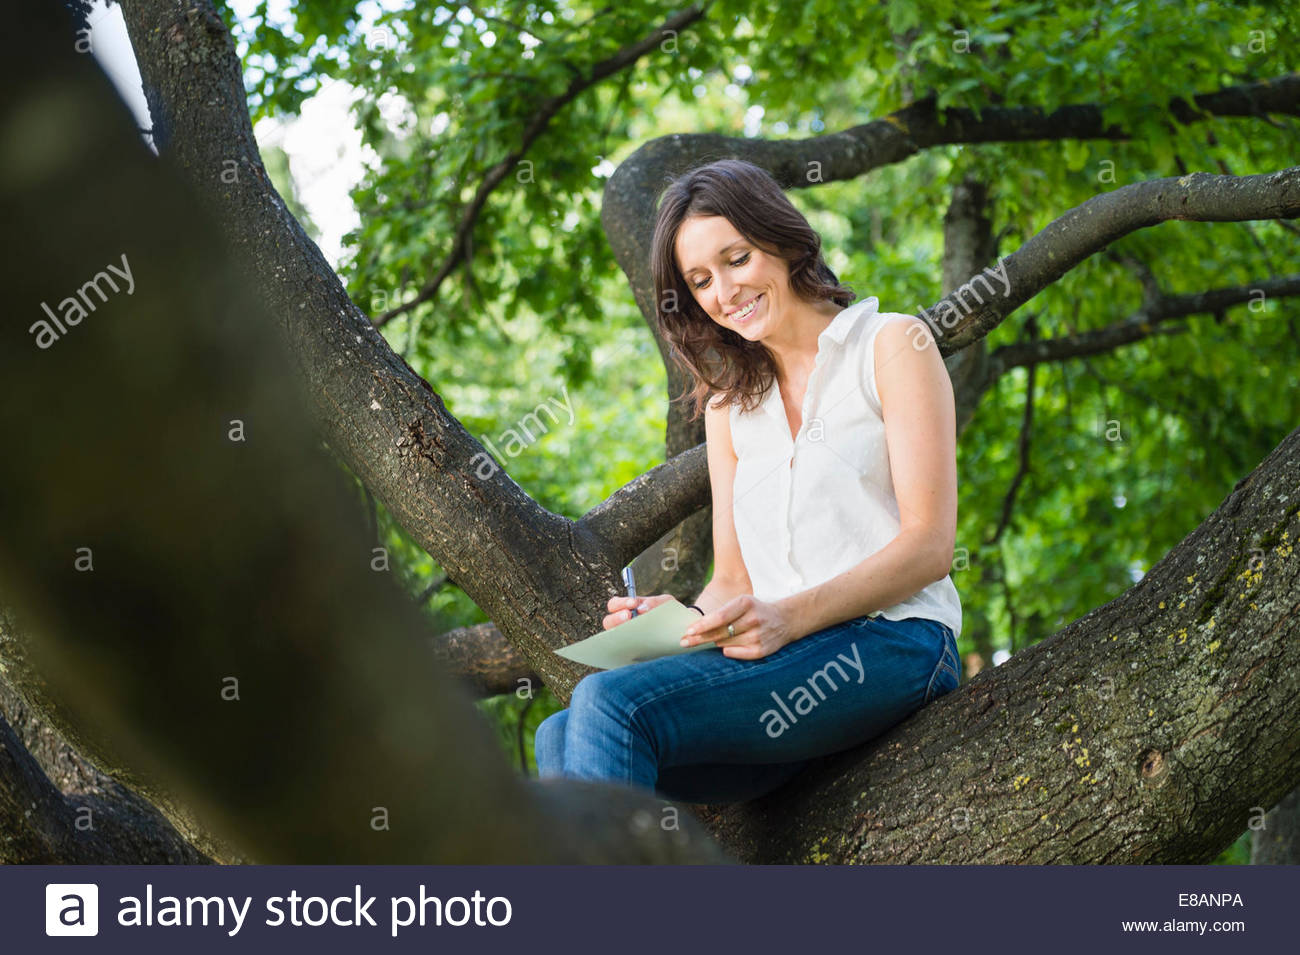 Mid adult woman sitting in woodland tree writing - Stock Image